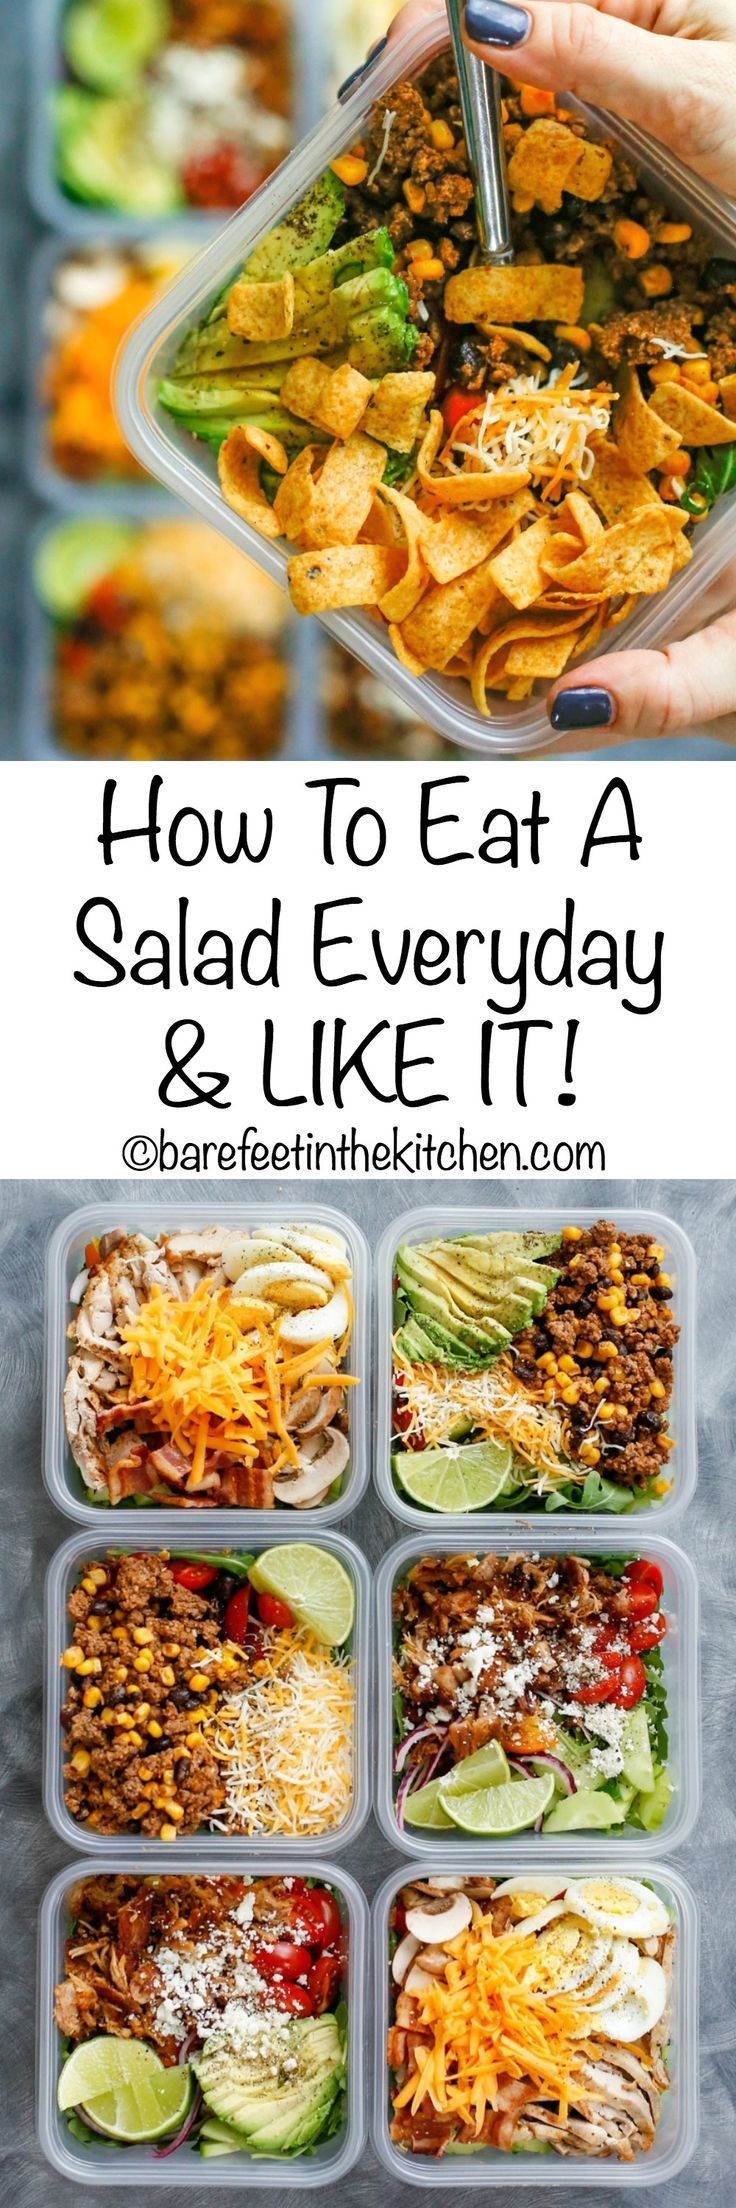 Aka The Fritos Everyday Diet Salad Recipes Healthy LunchMeal